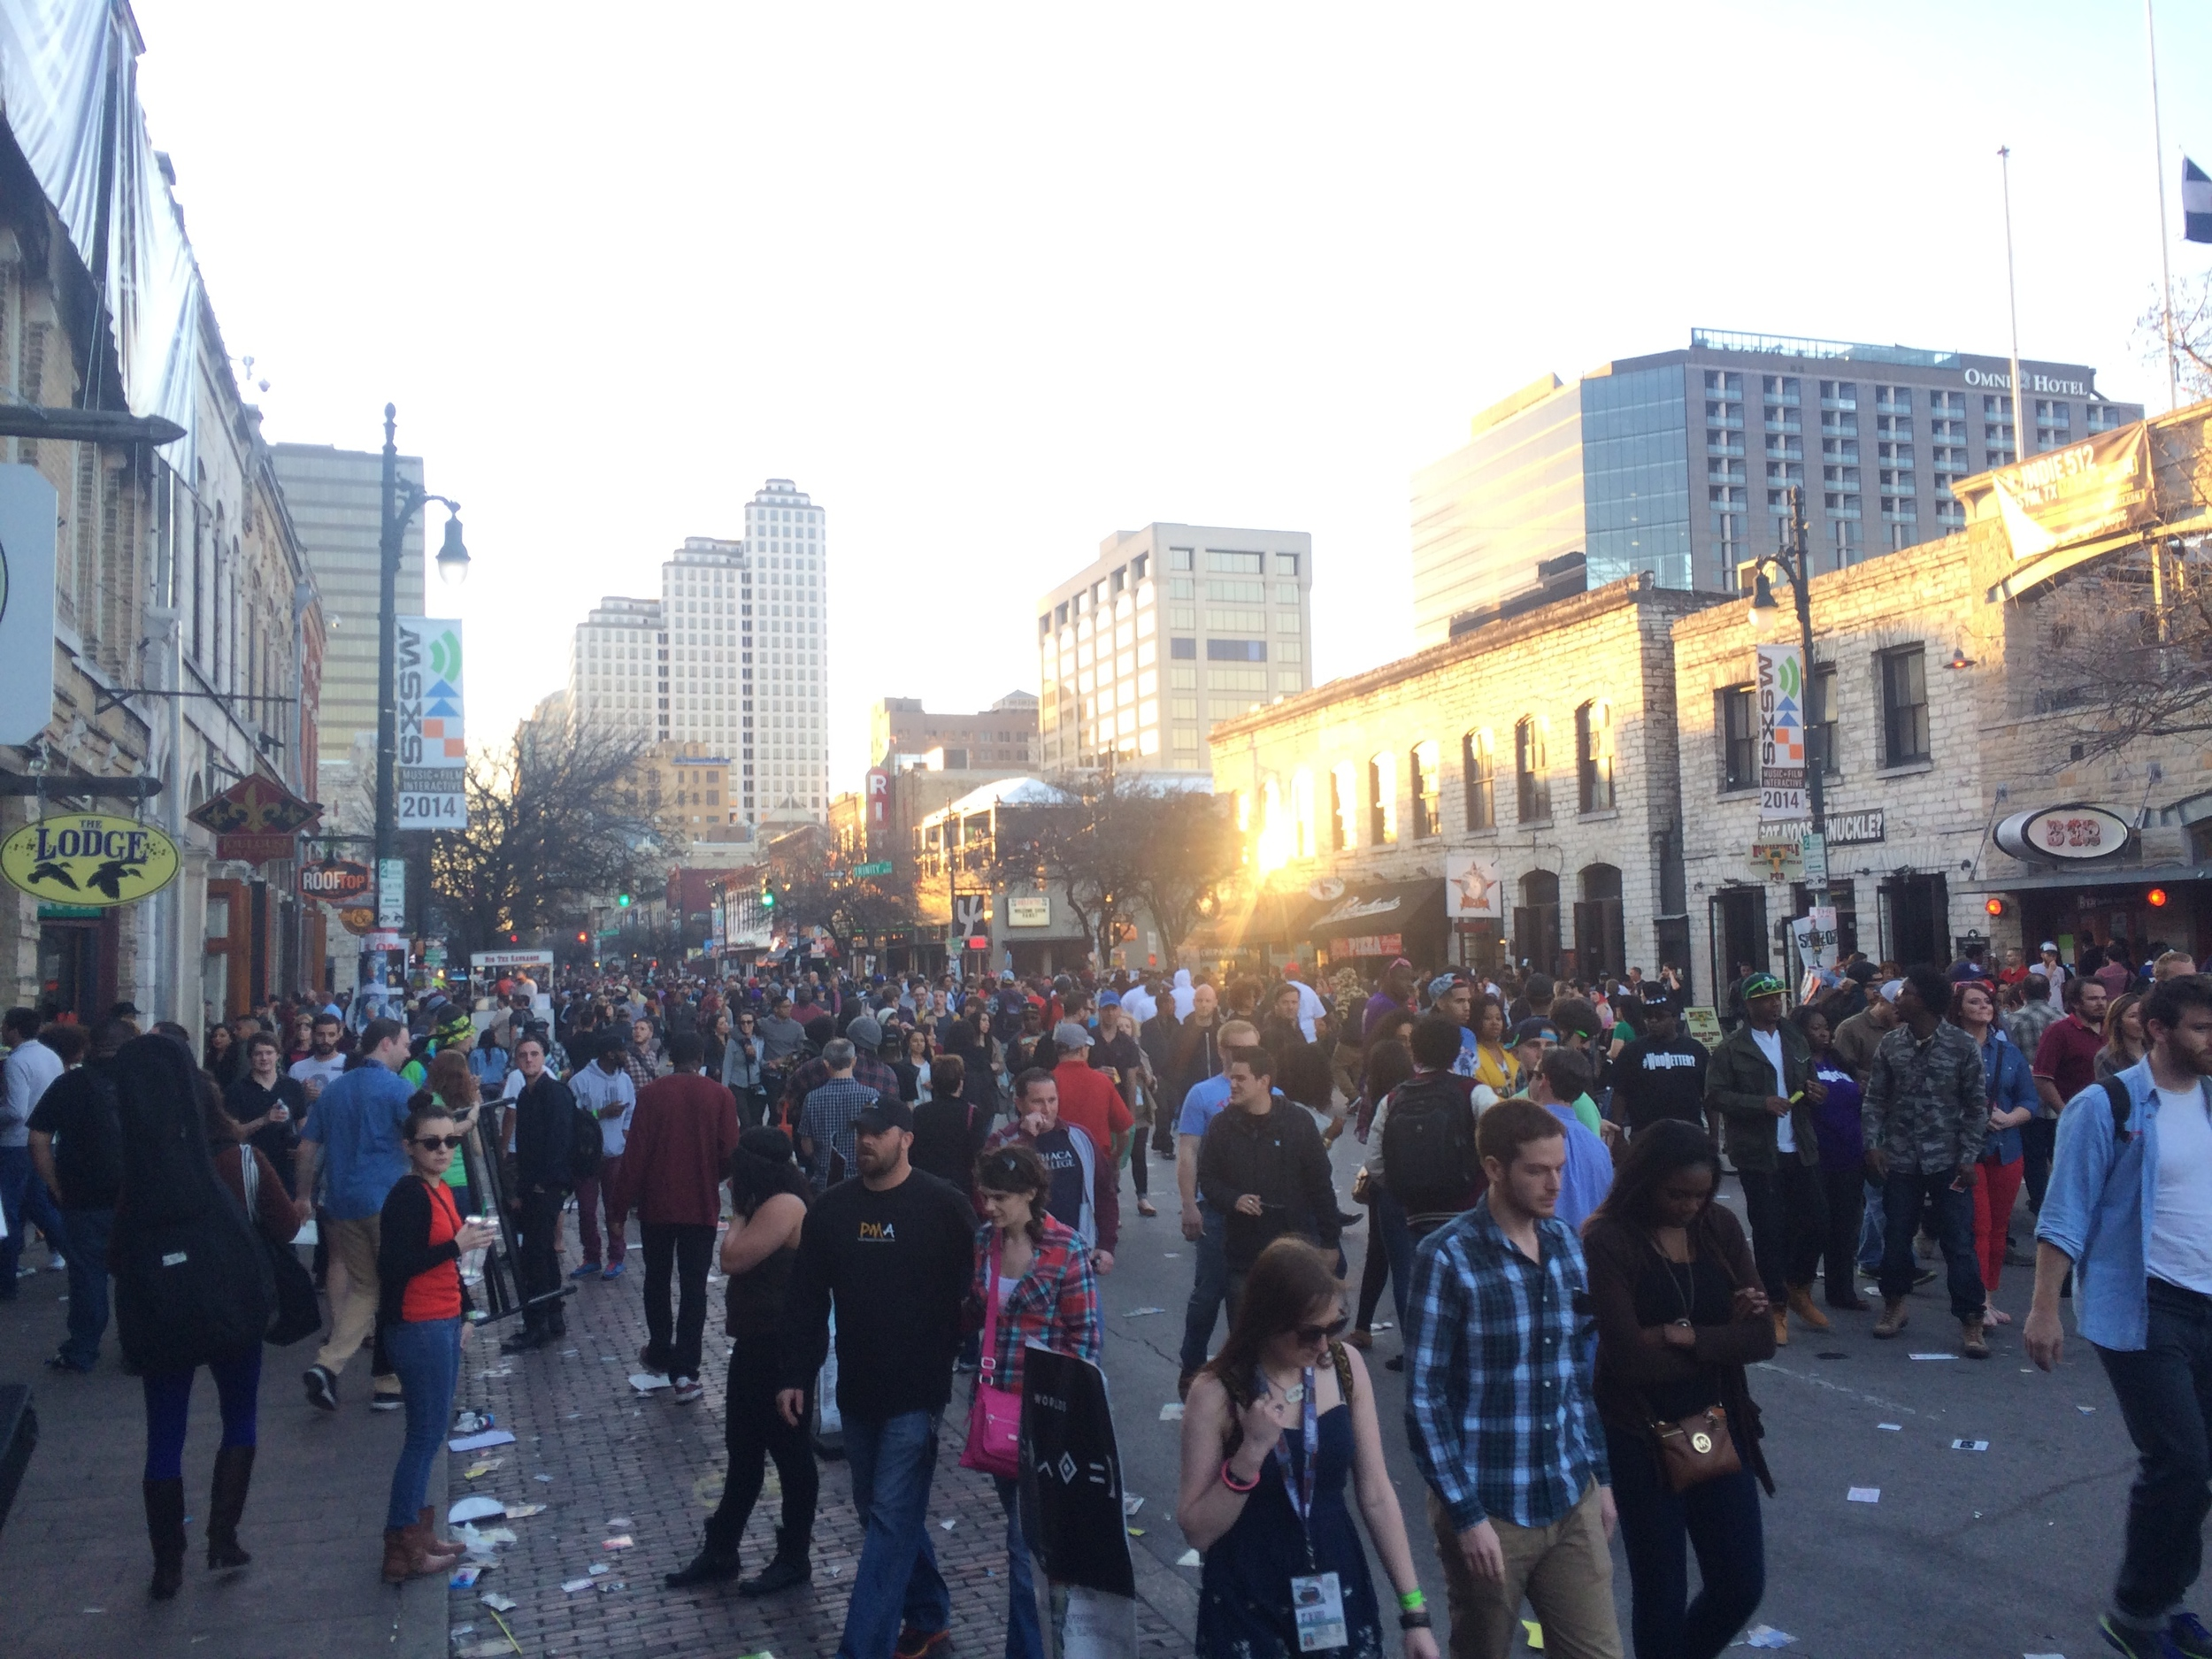 6th street before it got really crazy!